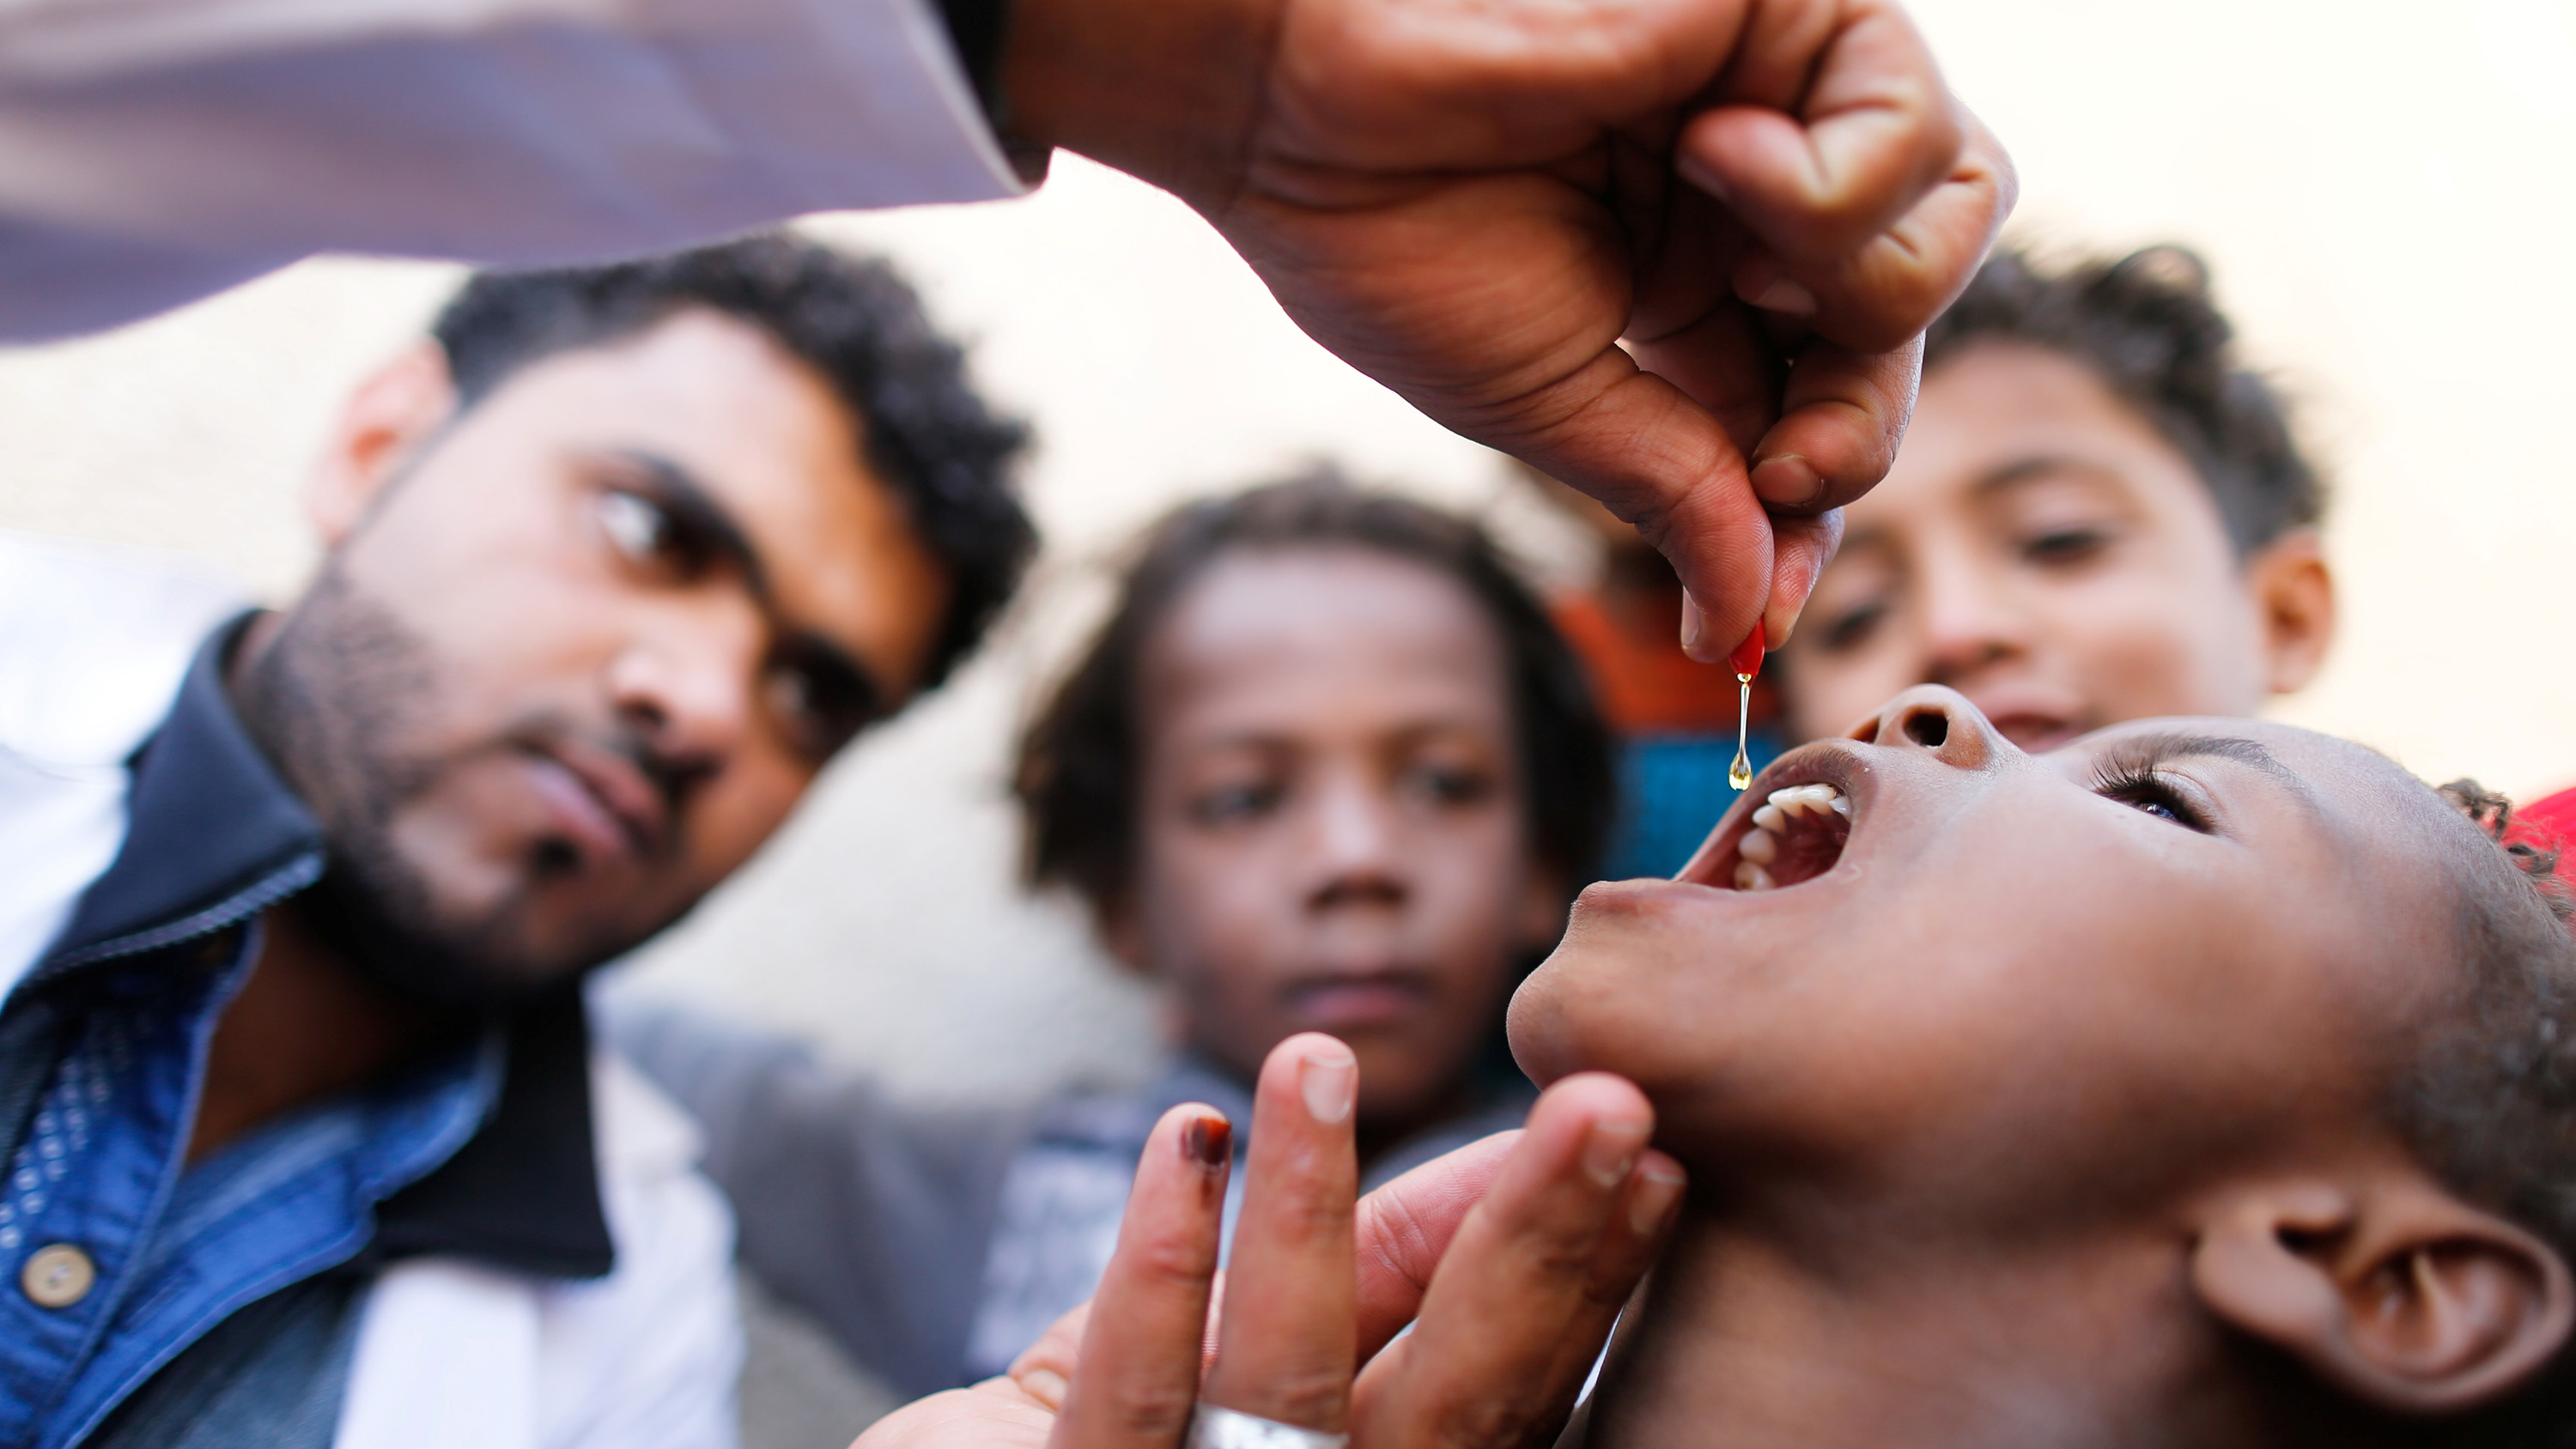 The image shows a health worker holding a dropper above a child's head. He is concentrating on the dropper, from which he is squeezing a clear liquid into the child's open mouth with family members looking on in the background.